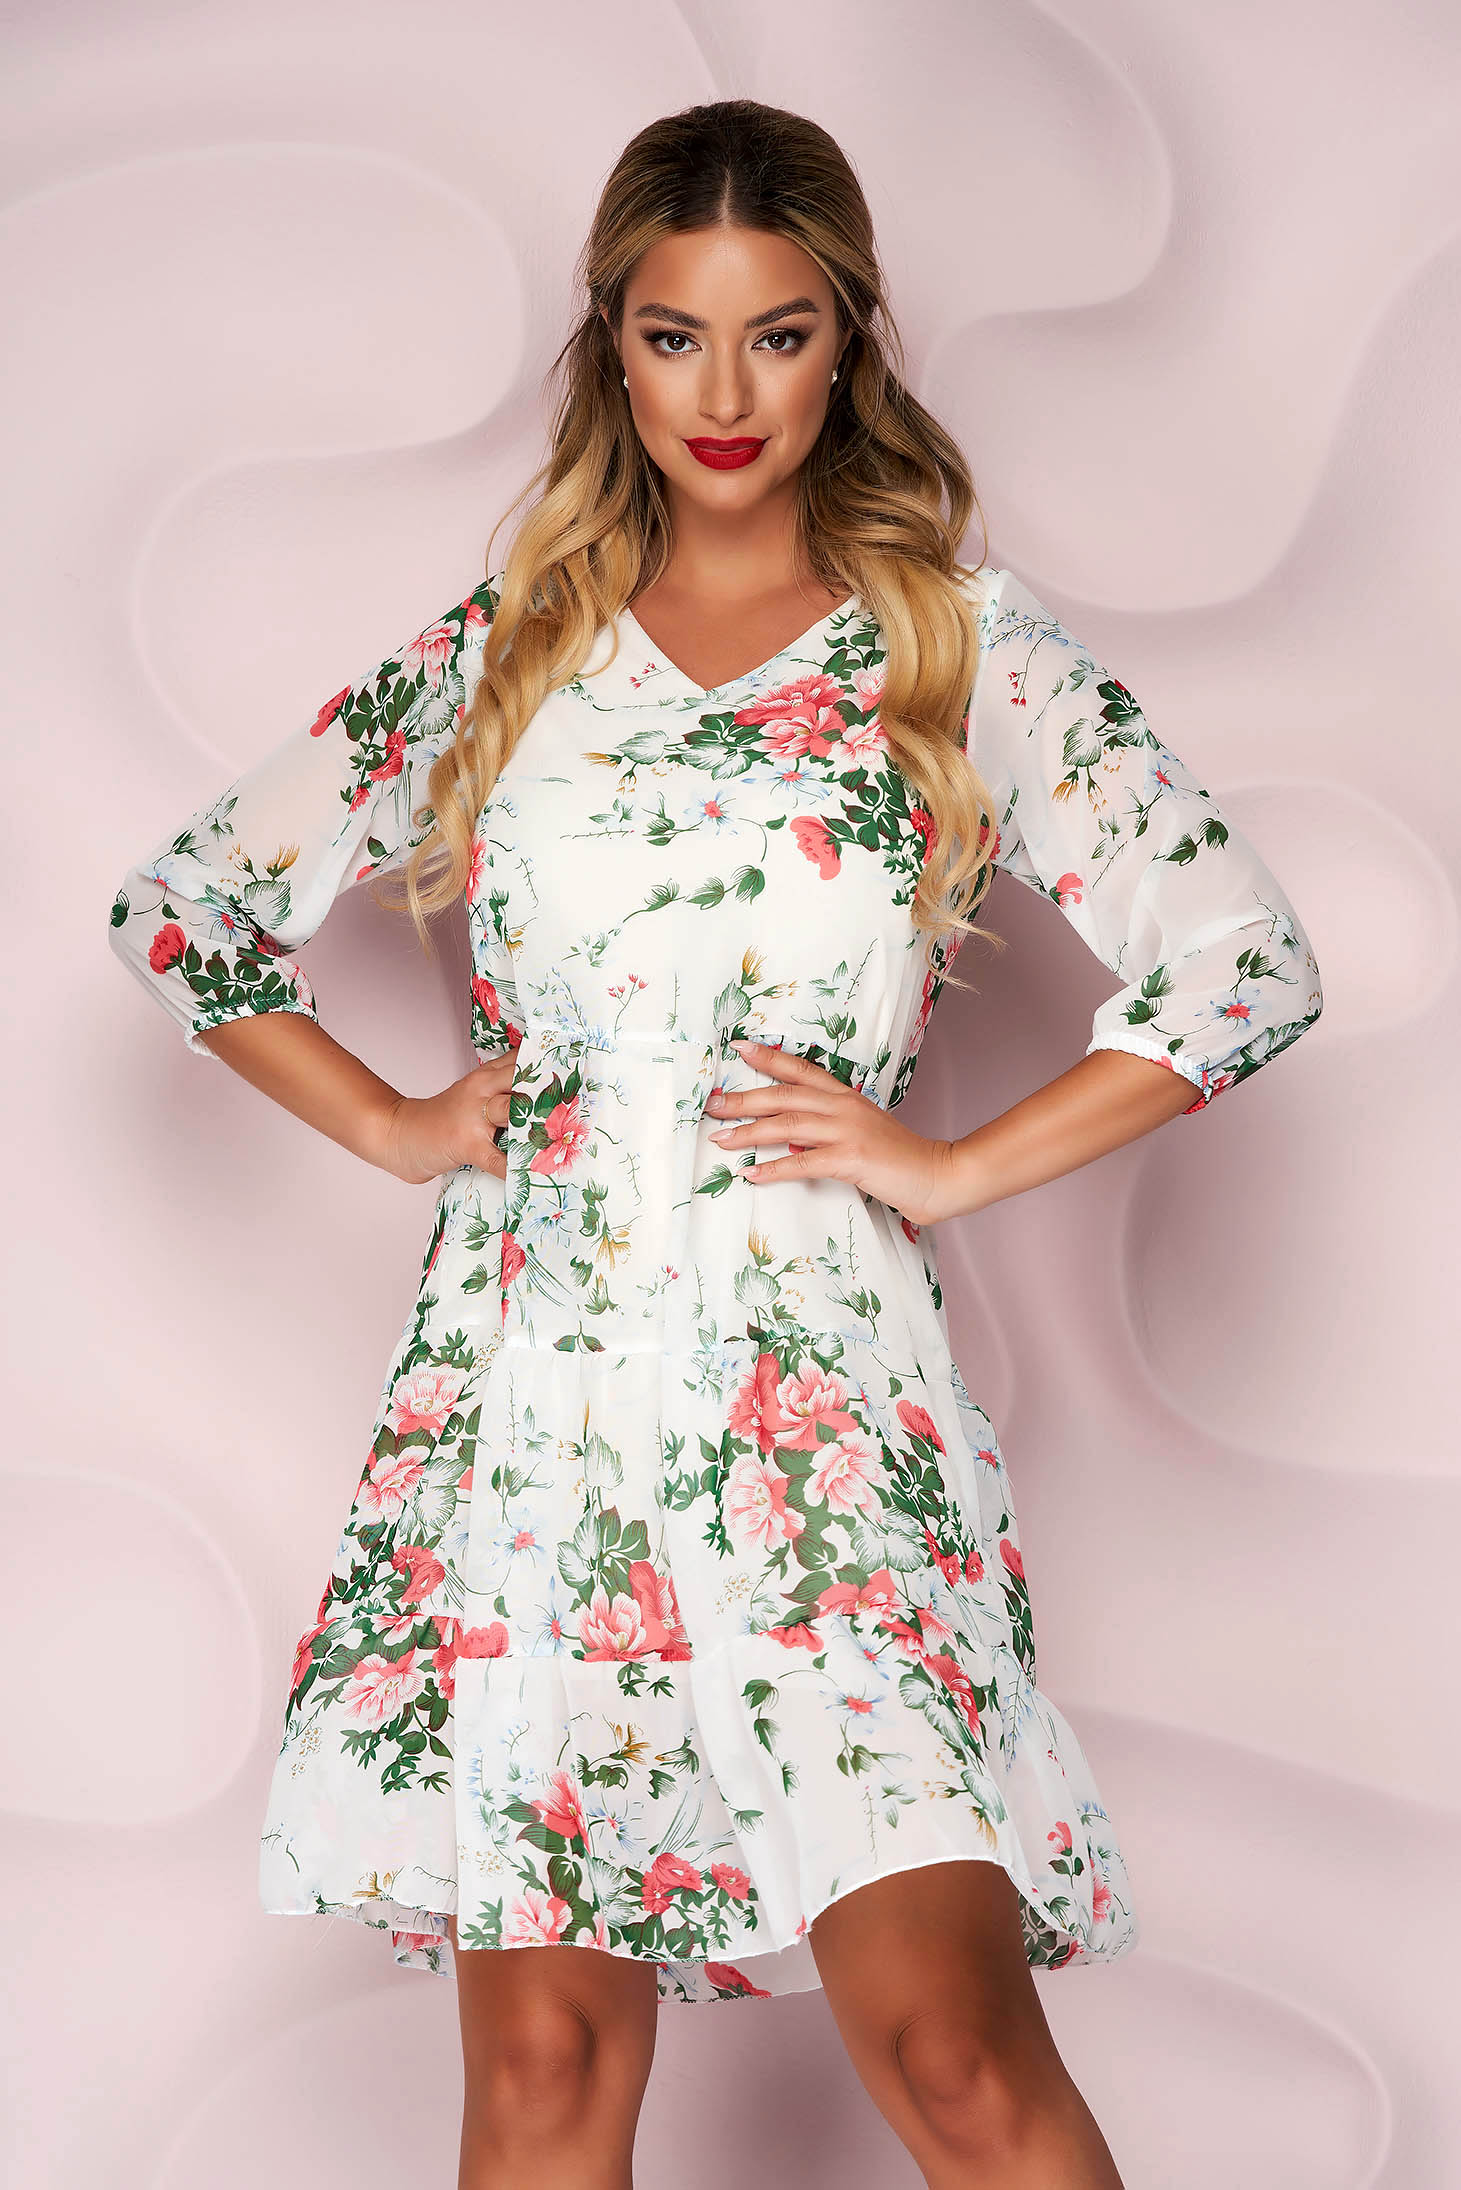 From veil fabric loose fit with ruffle details with 3/4 sleeves dress